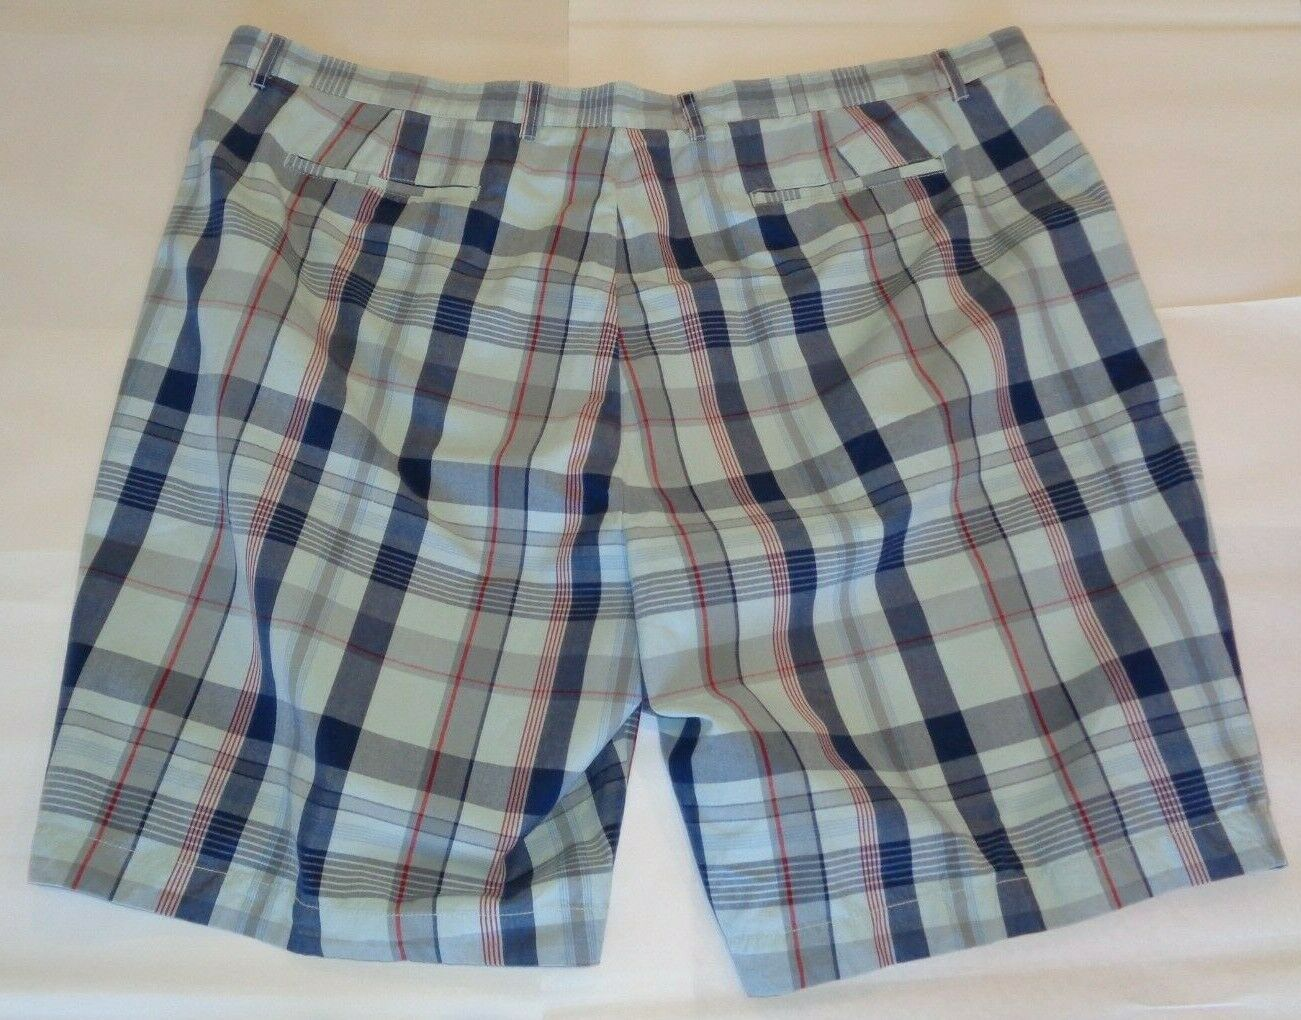 Casuals Roundtree & Yorke Size 52 STRAIGHT FIT Light Blue Cotton New Mens Shorts image 2